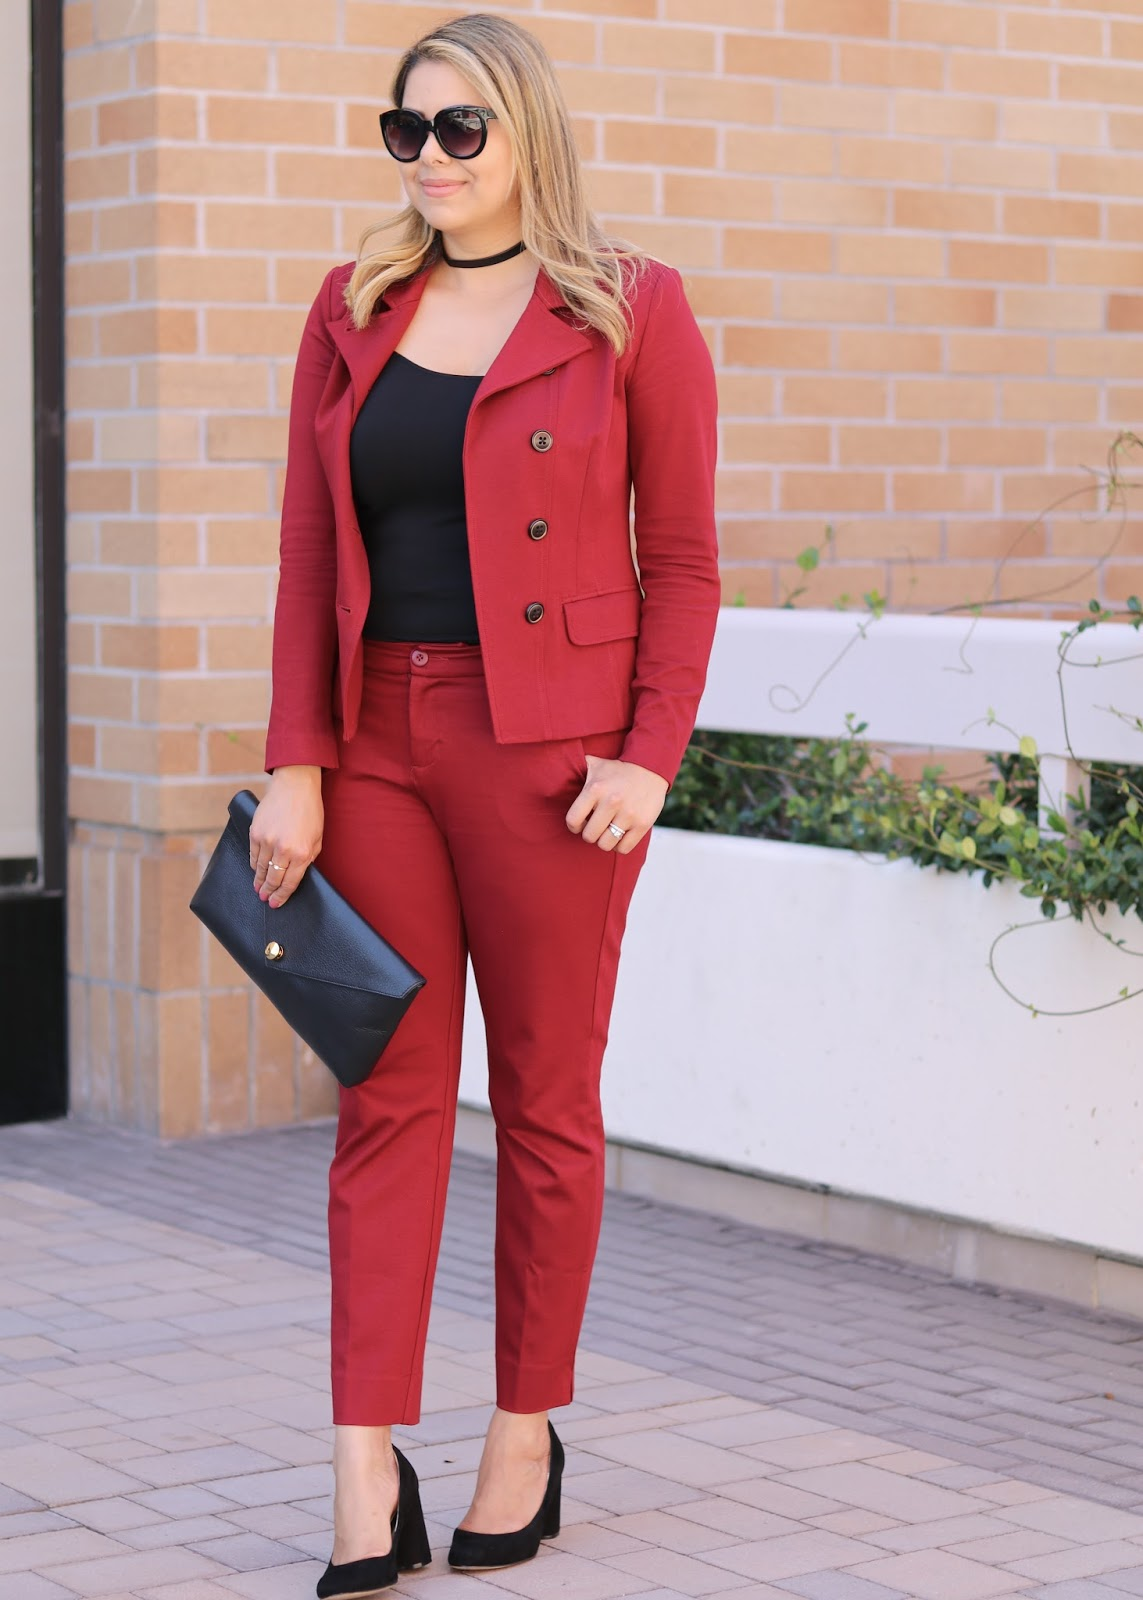 Fall Burgundy women suit, fall deep red women suit, fall 2016 trends, fall 2016 fashion